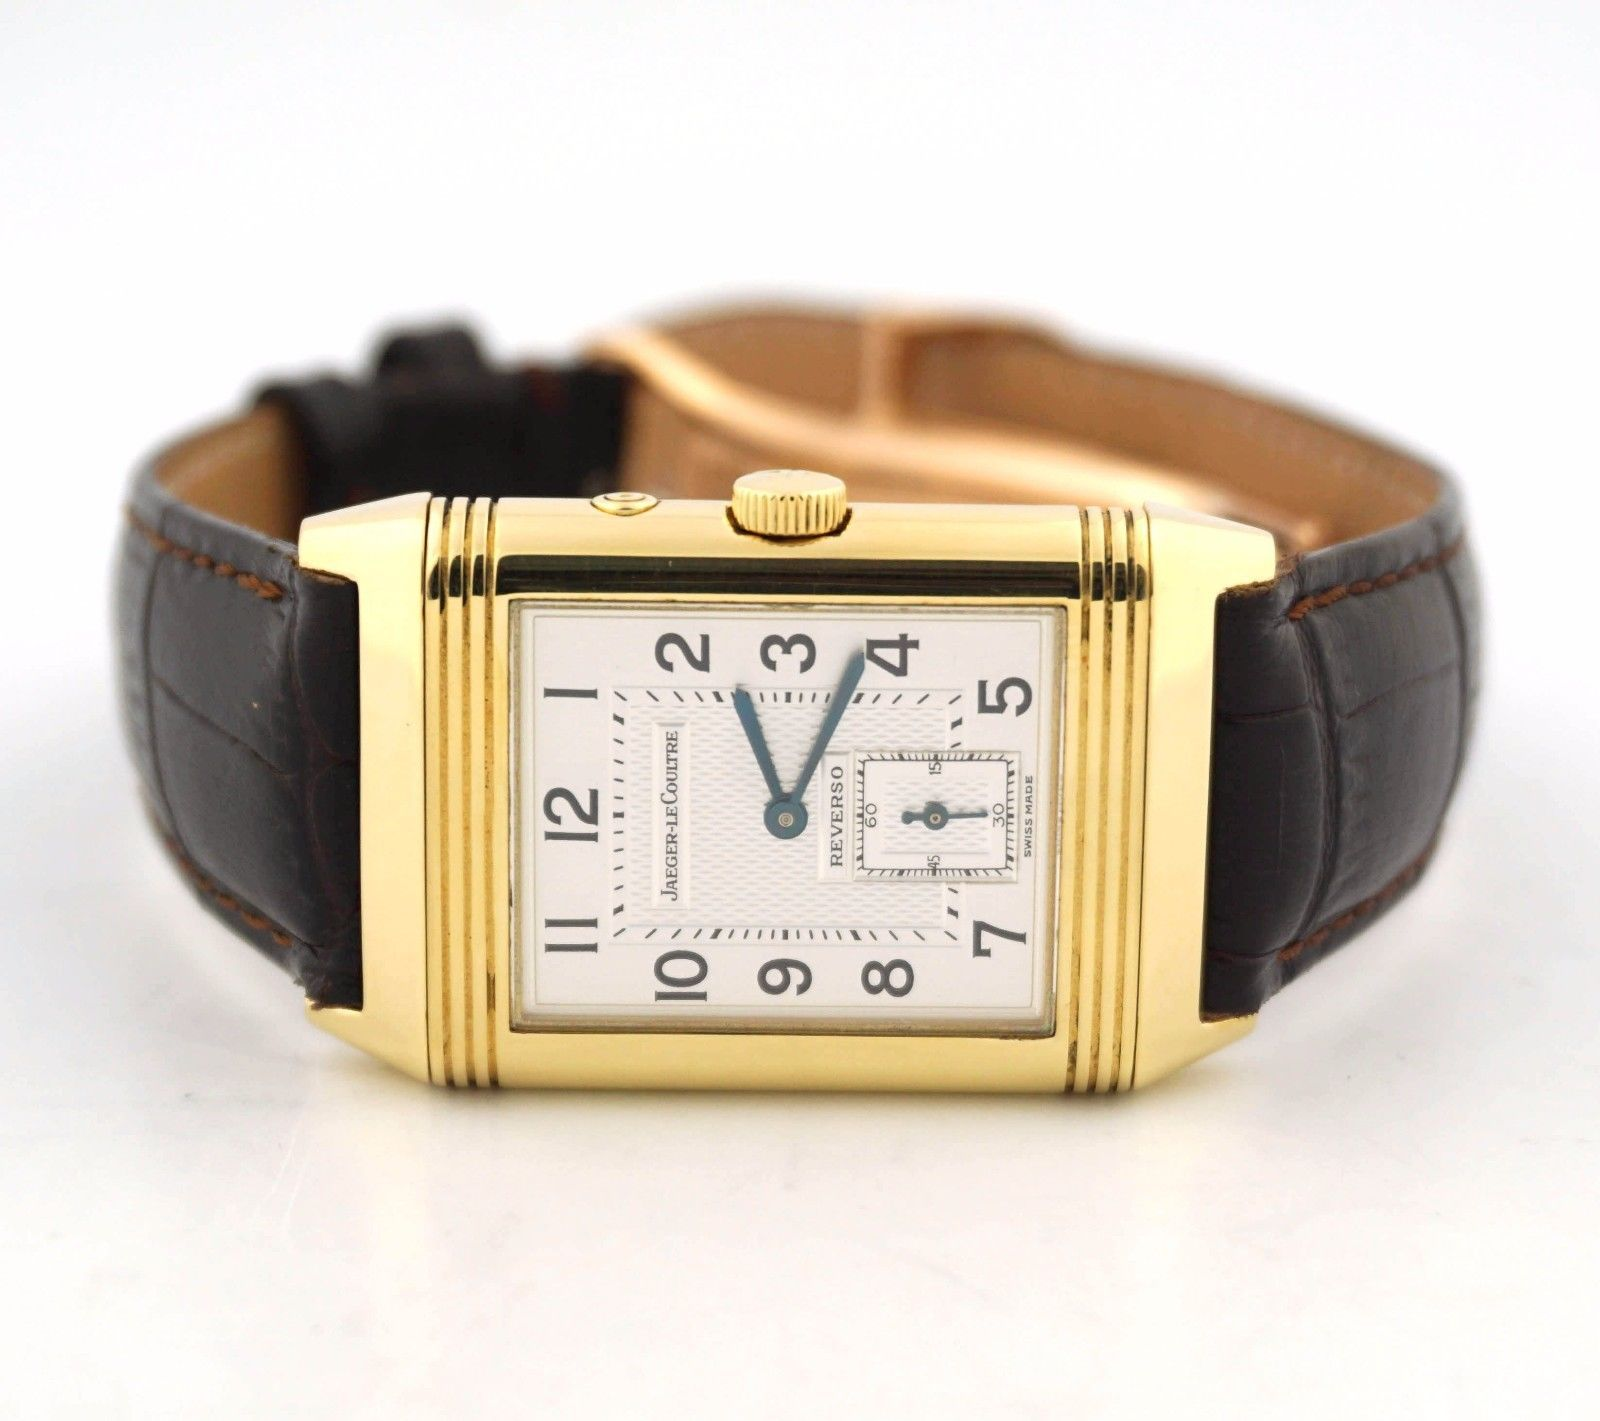 aab68d30cb07 JAEGER-LECOULTRE REVERSO DUO NIGHT DAY 18K YELLOW GOLD 270.1.54 WATCH